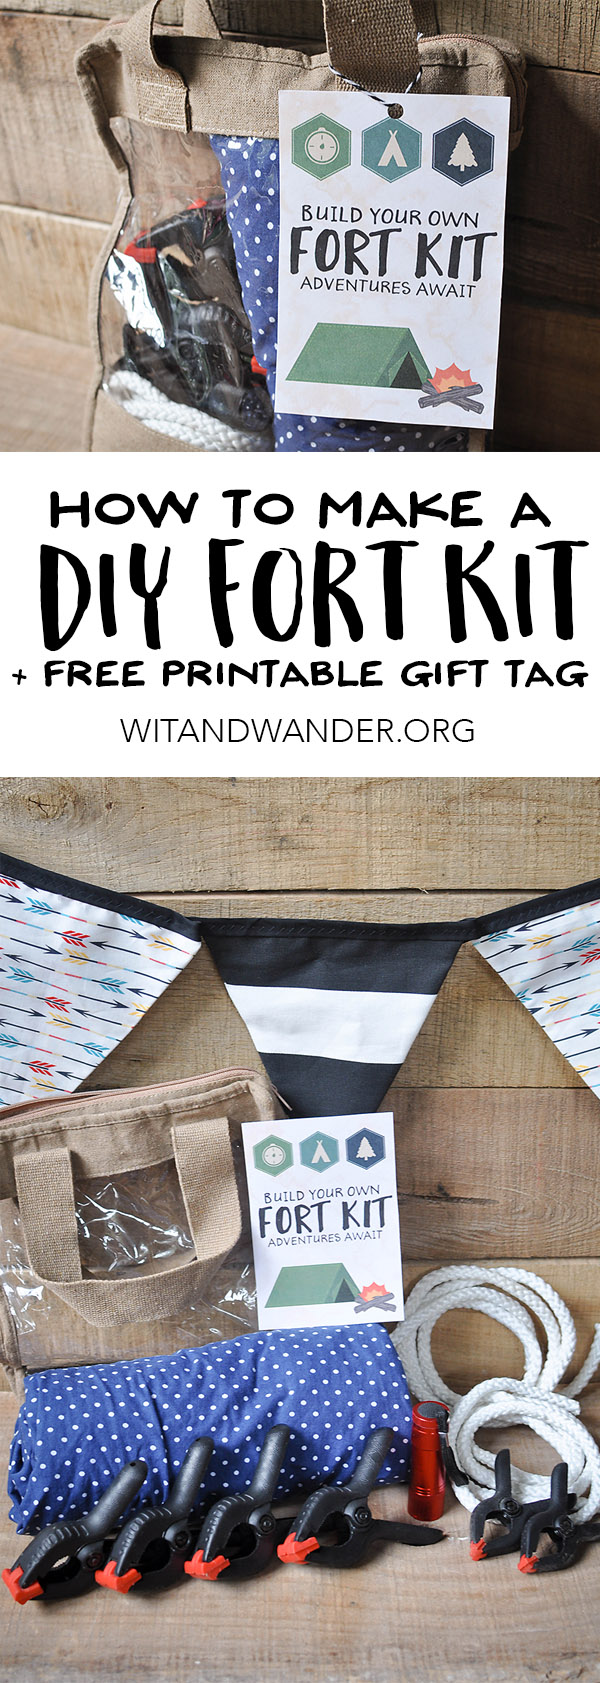 Today we are making a DIY fort kit using PVC pipe. I've done a few PVC projects and they are always lots of fun, but my favorite part is that PVC is cheap! All the supplies you need to make your fort kit is 1/2 inch PVC pipe, pipe connectors, a pipe cutter (the metal sturdy one is best!), duct tape, clamps, blankets (or drop cloths), and a box to store everything in.